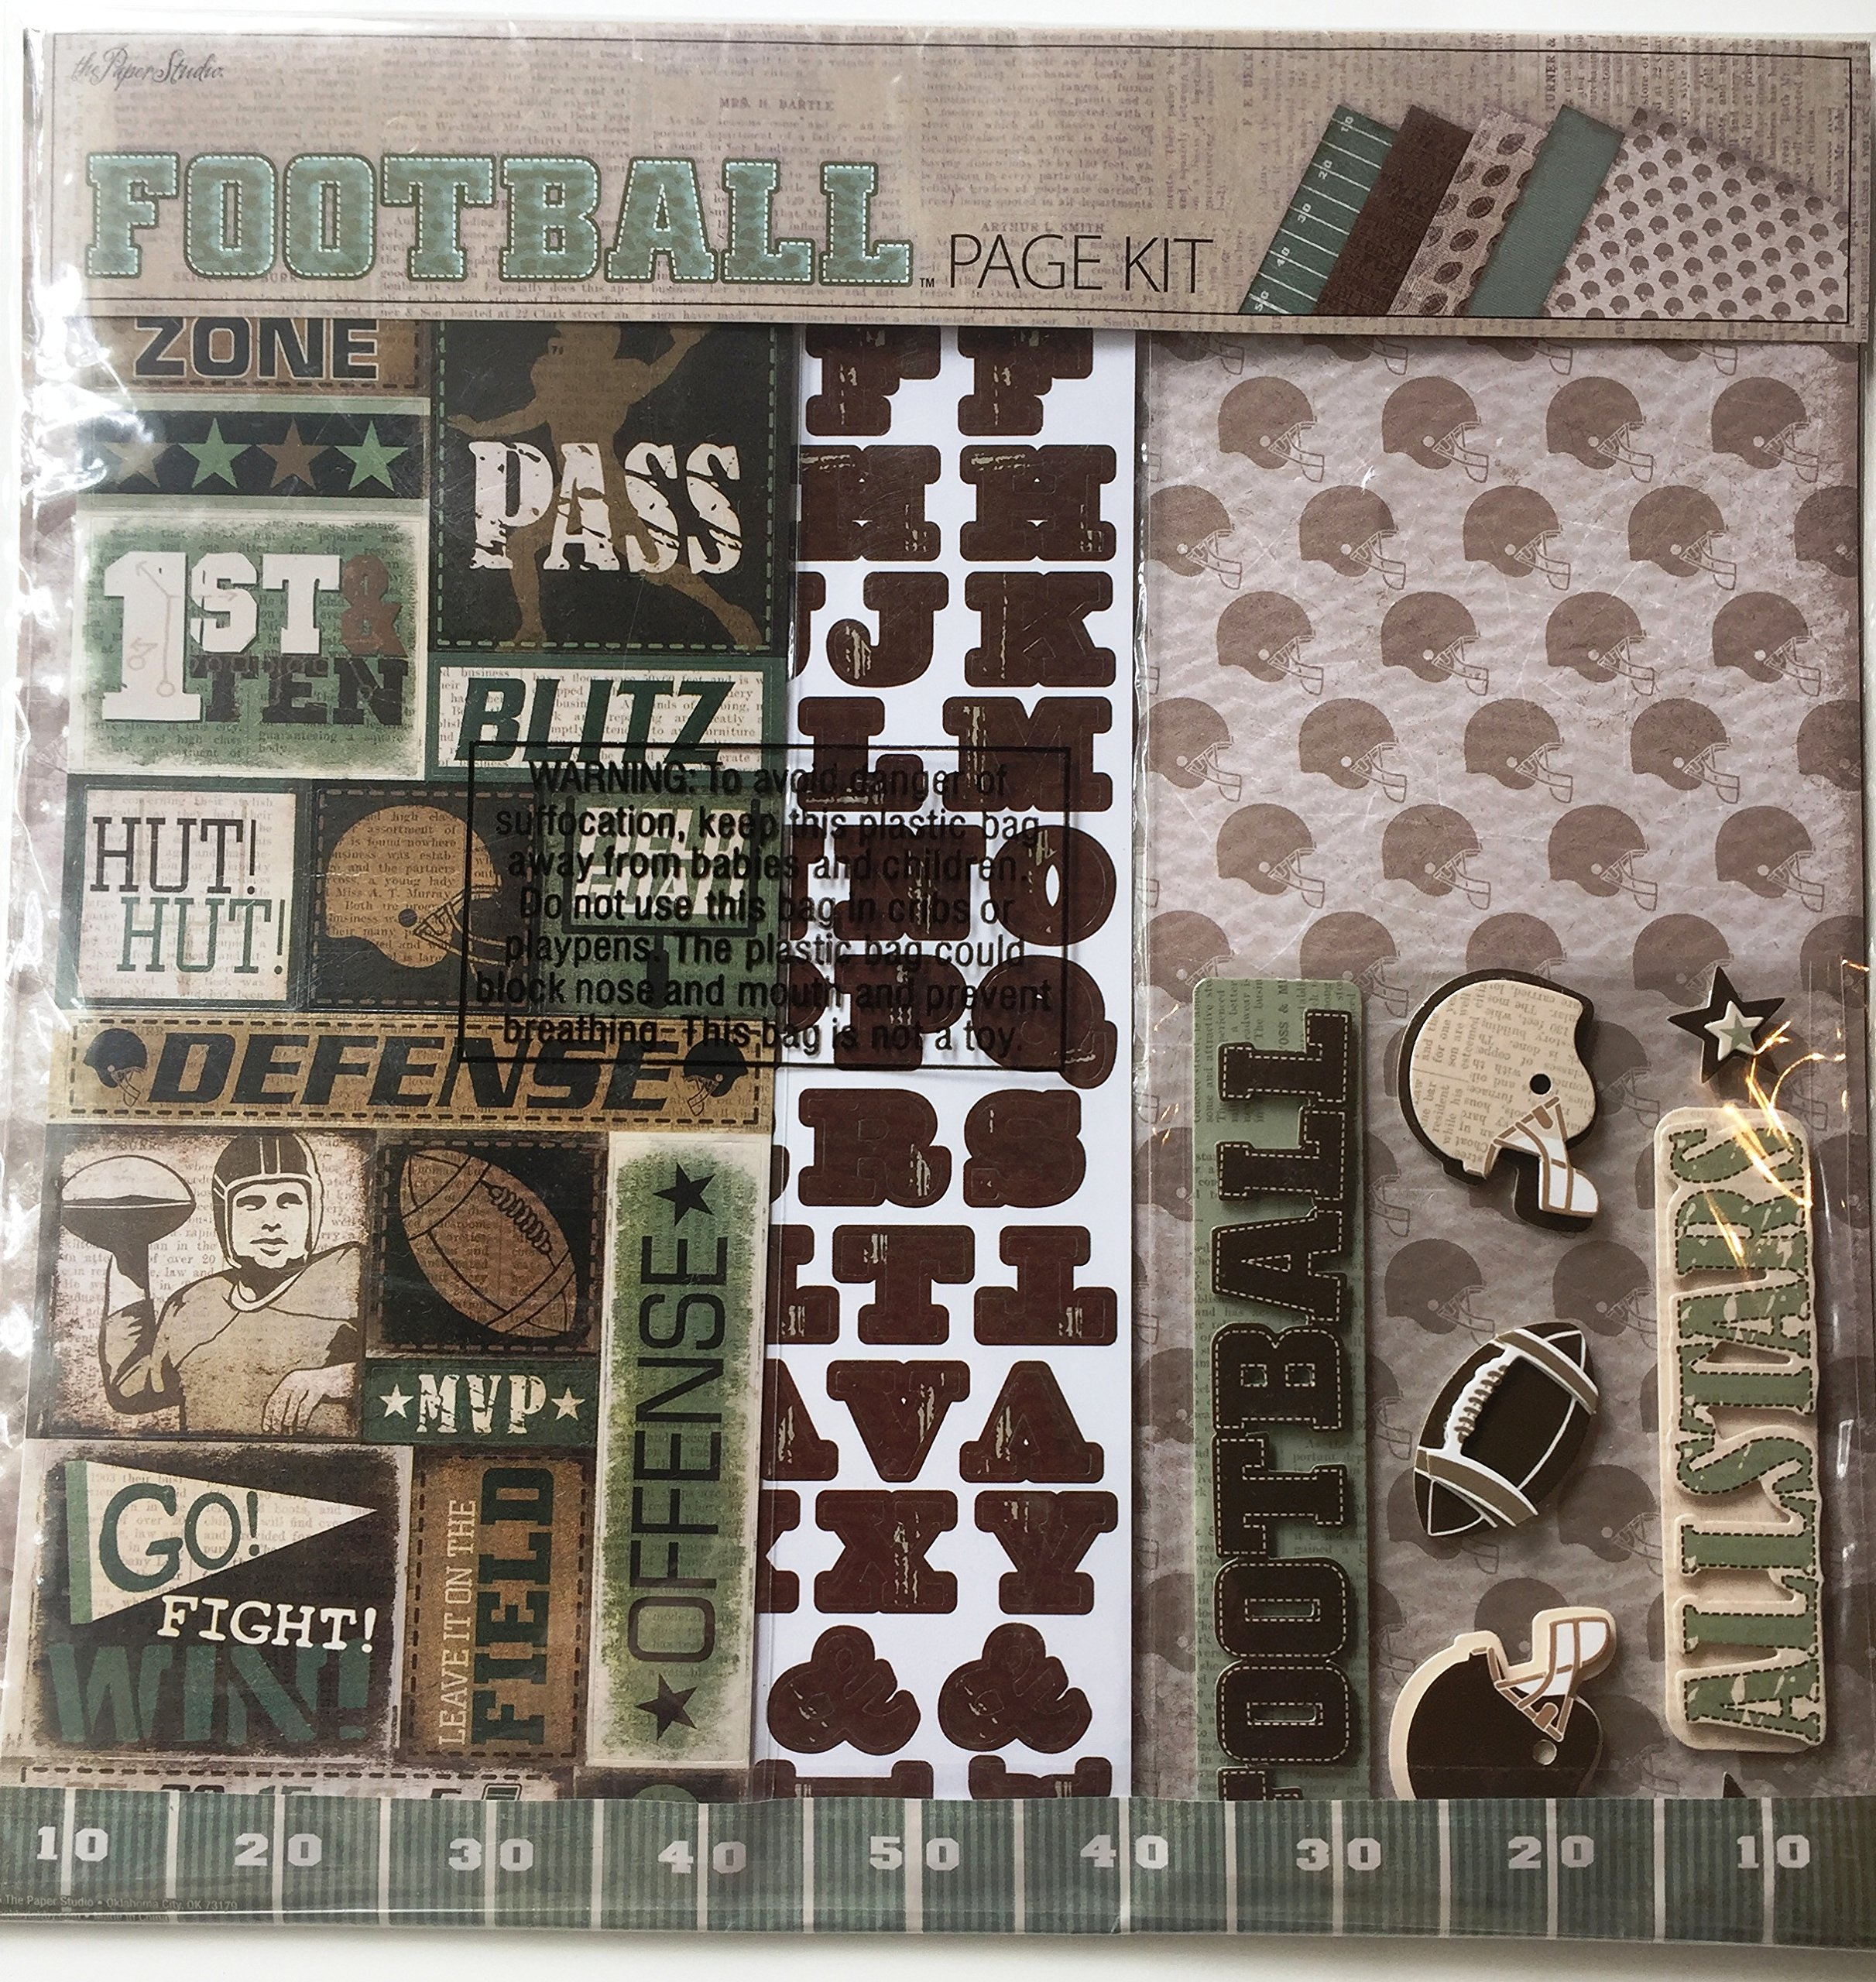 Football 12x12 inch Page Kit, 13 pcs, Paper, Stickers, Embellishments by The Paper Studio (Image #1)